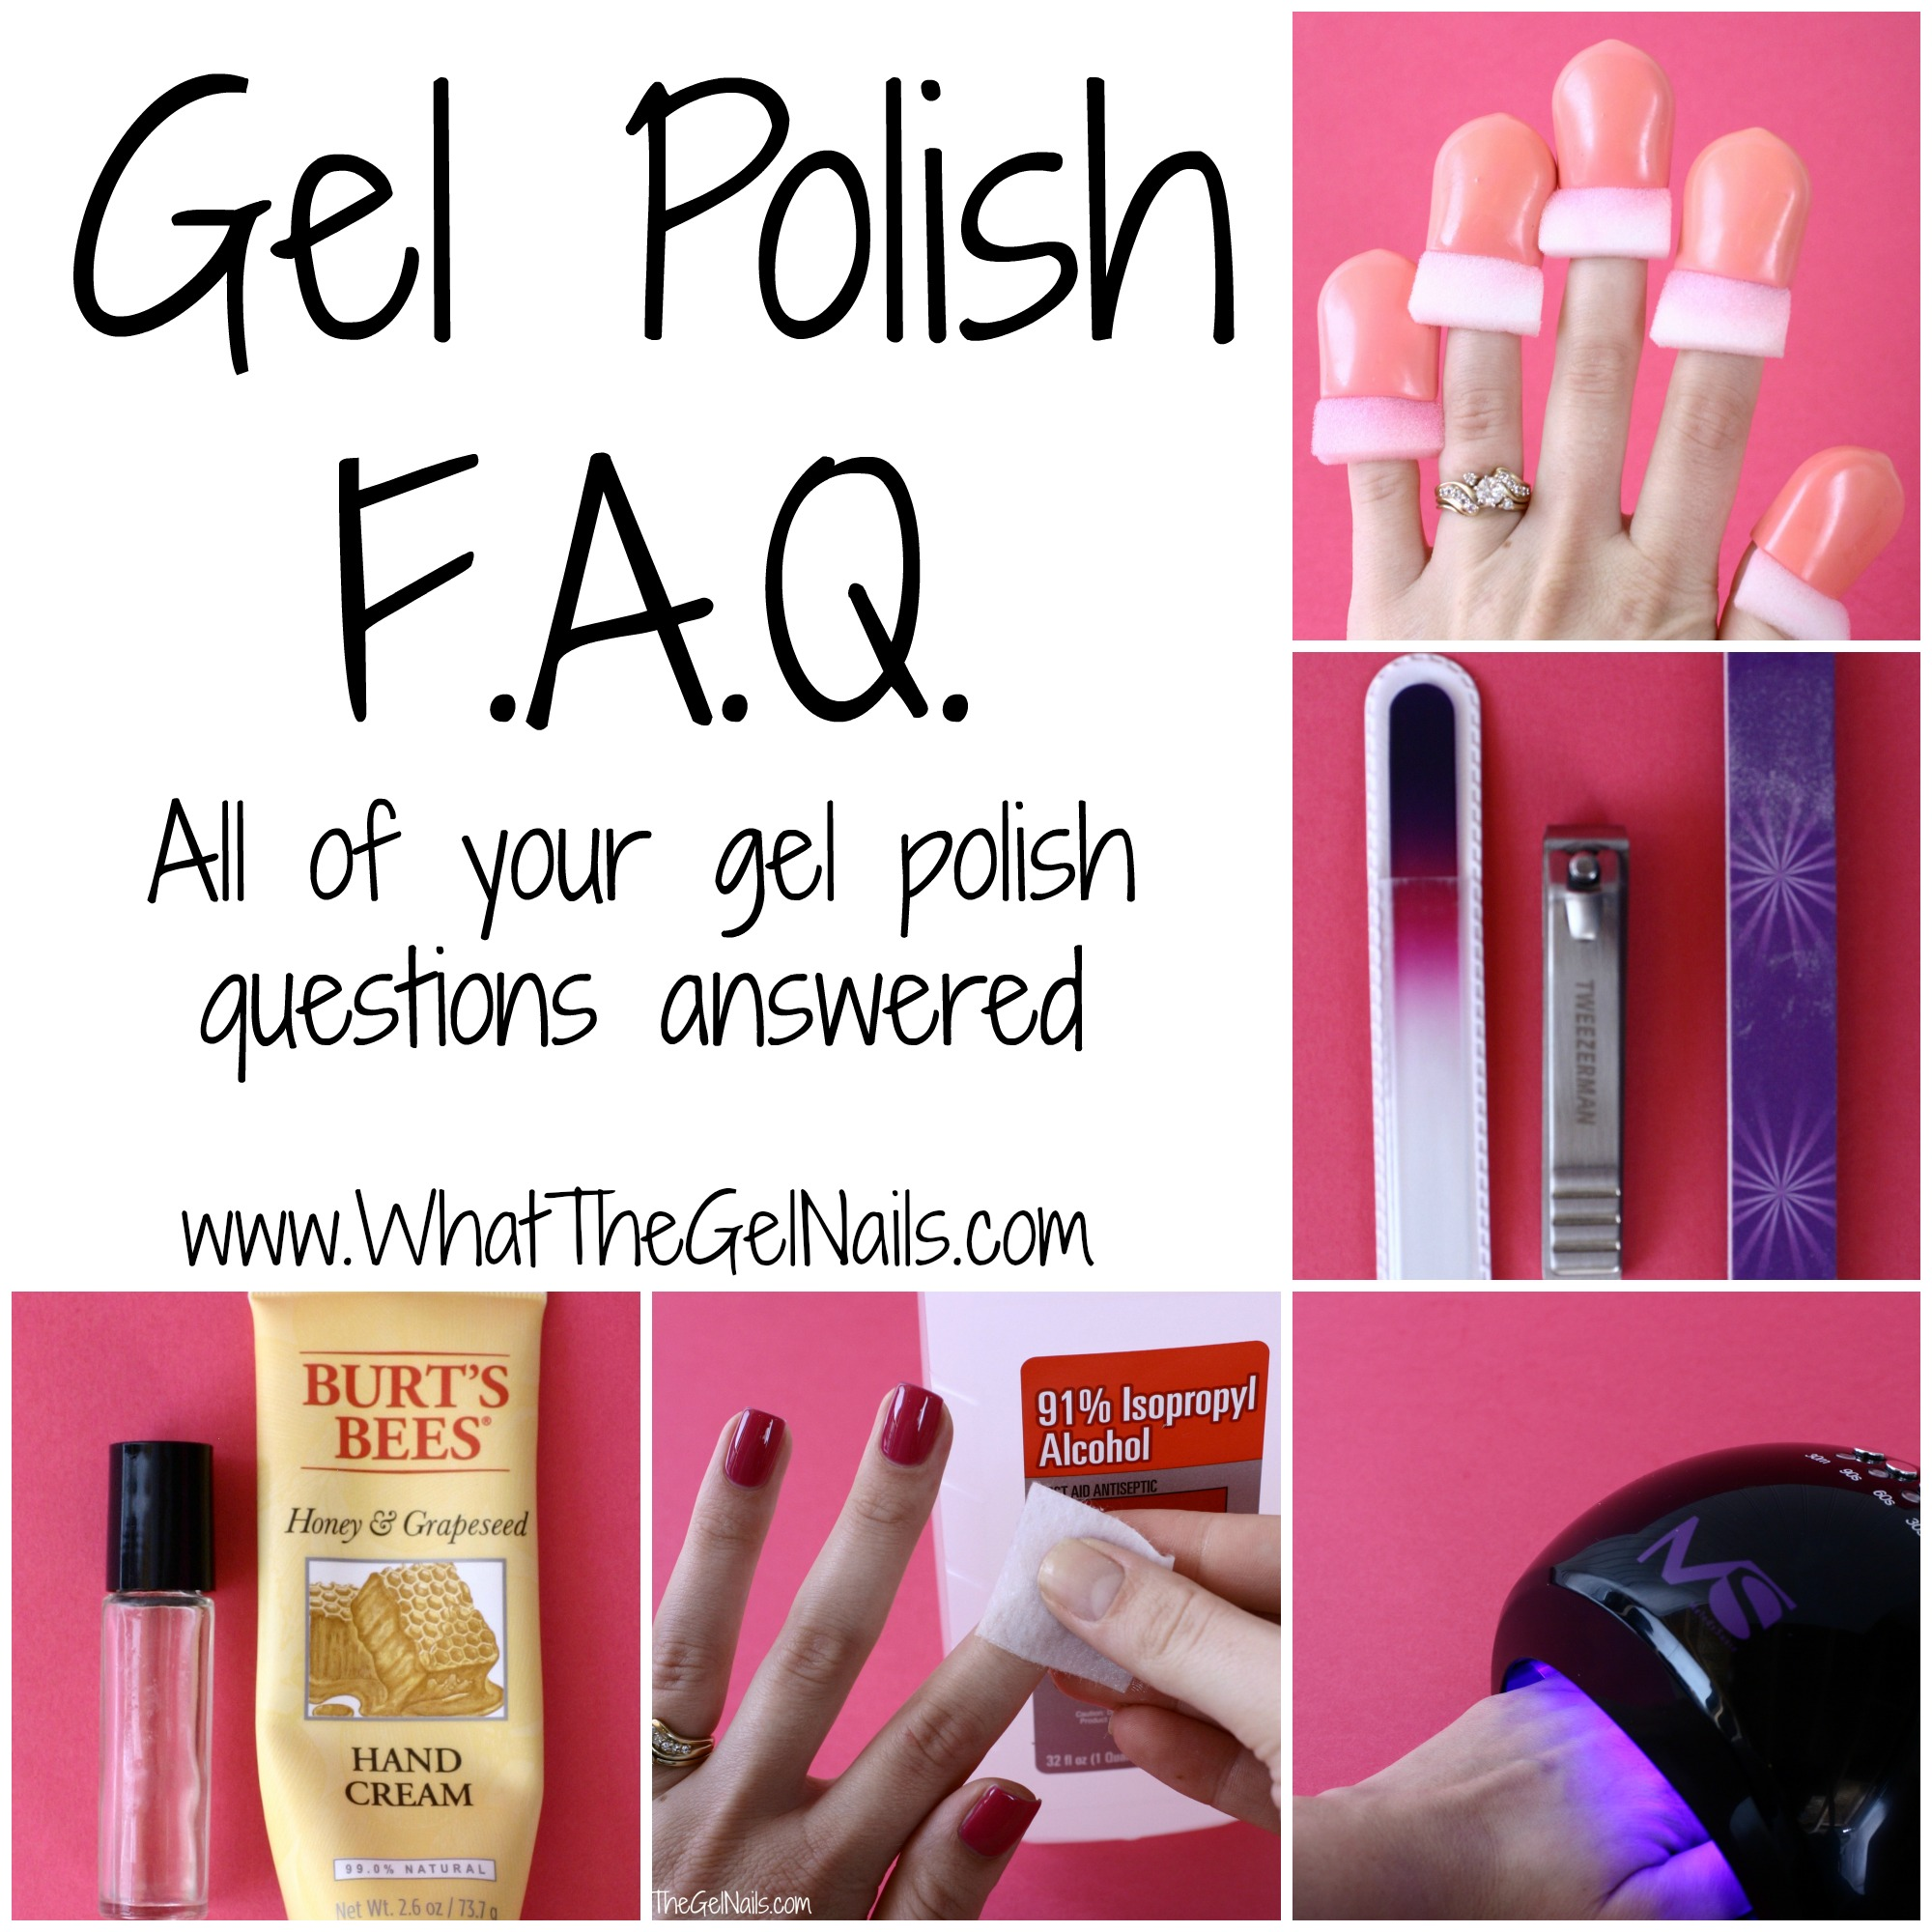 Tips and tricks for gel polish lifting tips and tricks for gel polish lifting gel polish faq solutioingenieria Gallery